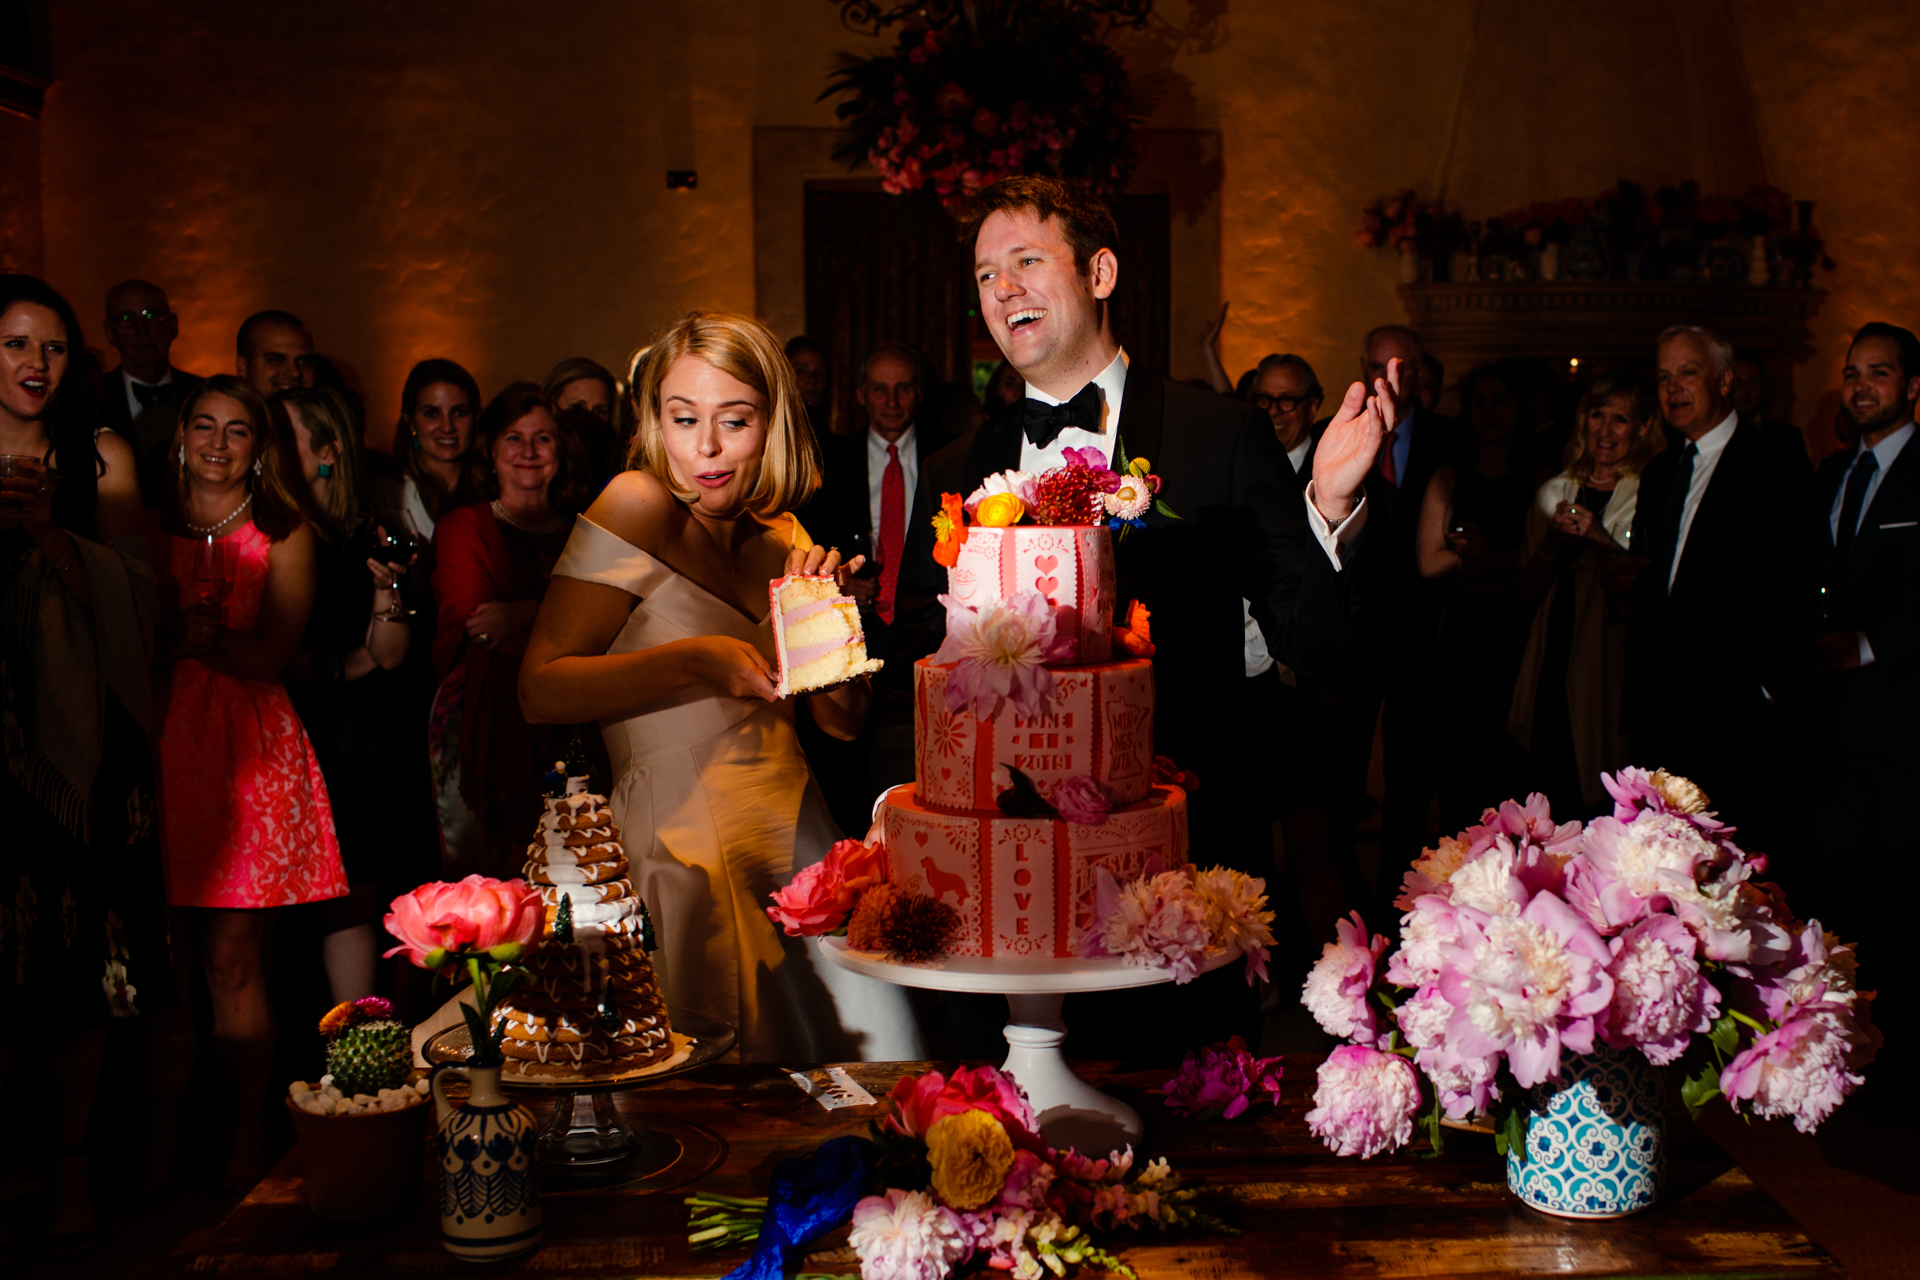 Cake cutting photograph with the bride and groom deciding if they should smash or not smash the cake.